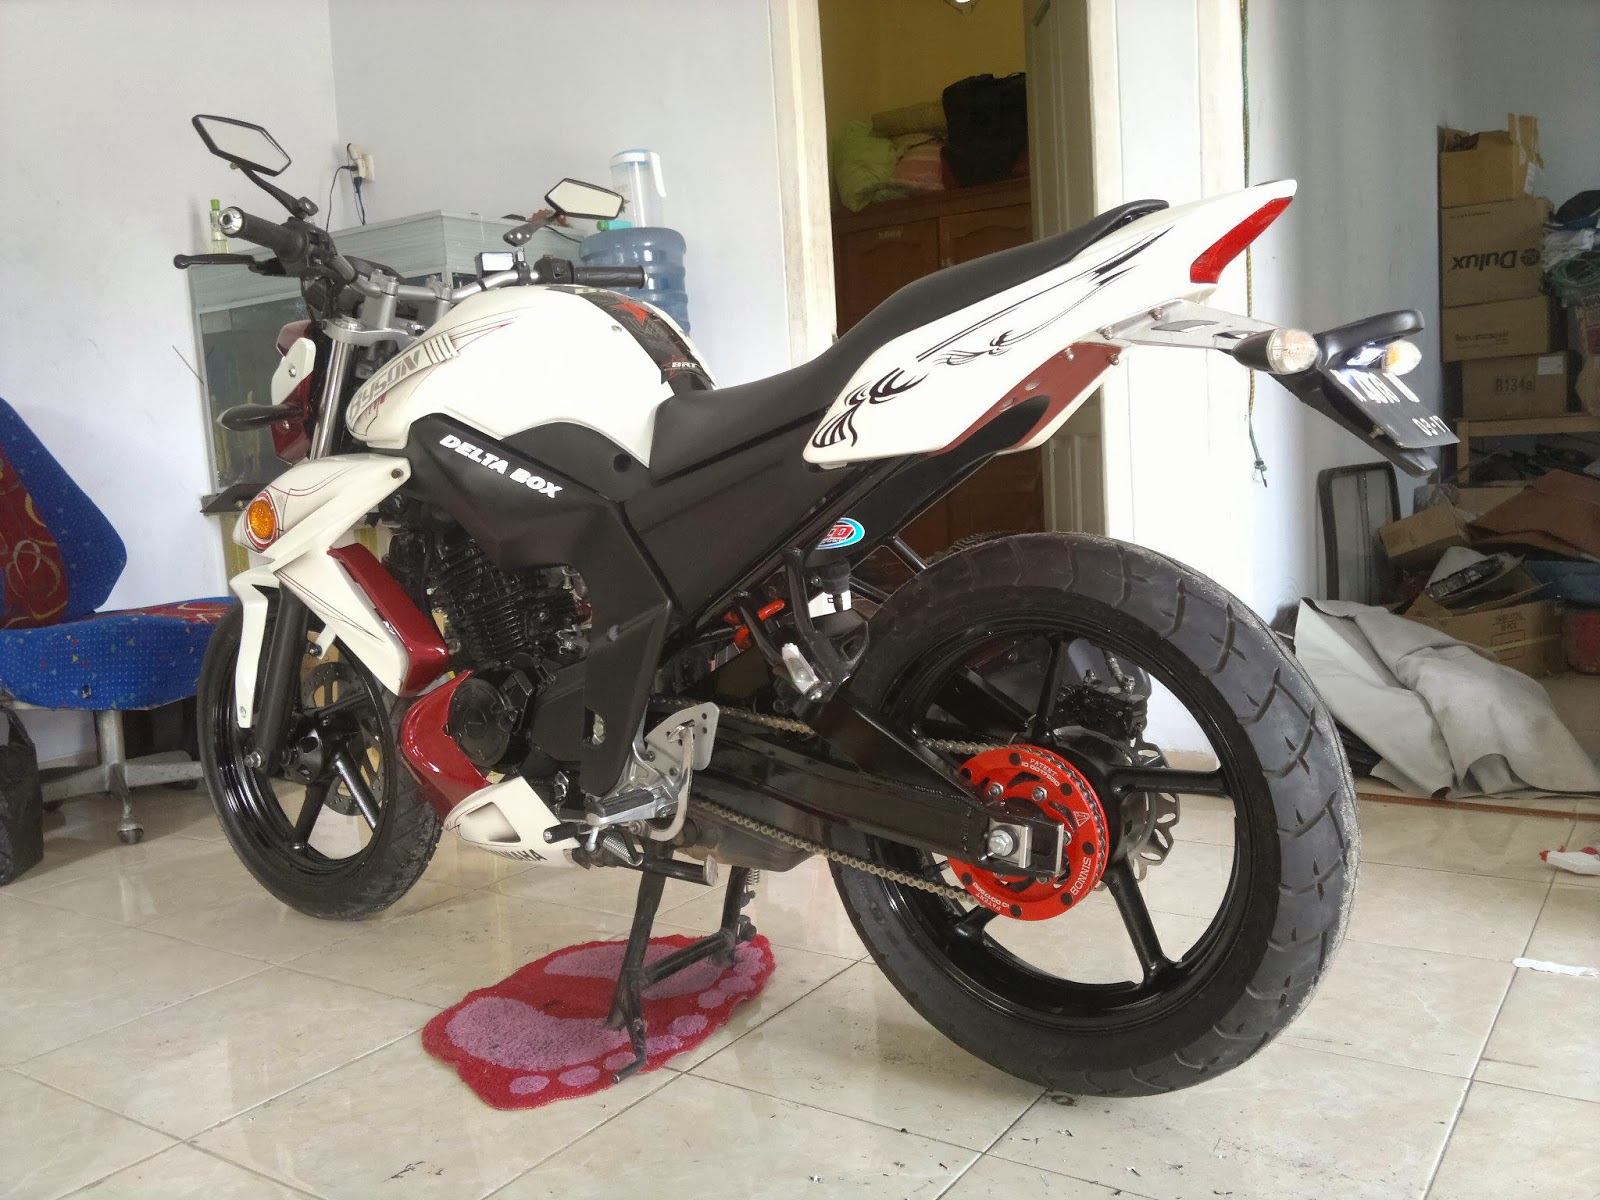 Modifikasi Yamaha Byson Minimalis, Upgrade Kesan Fighter